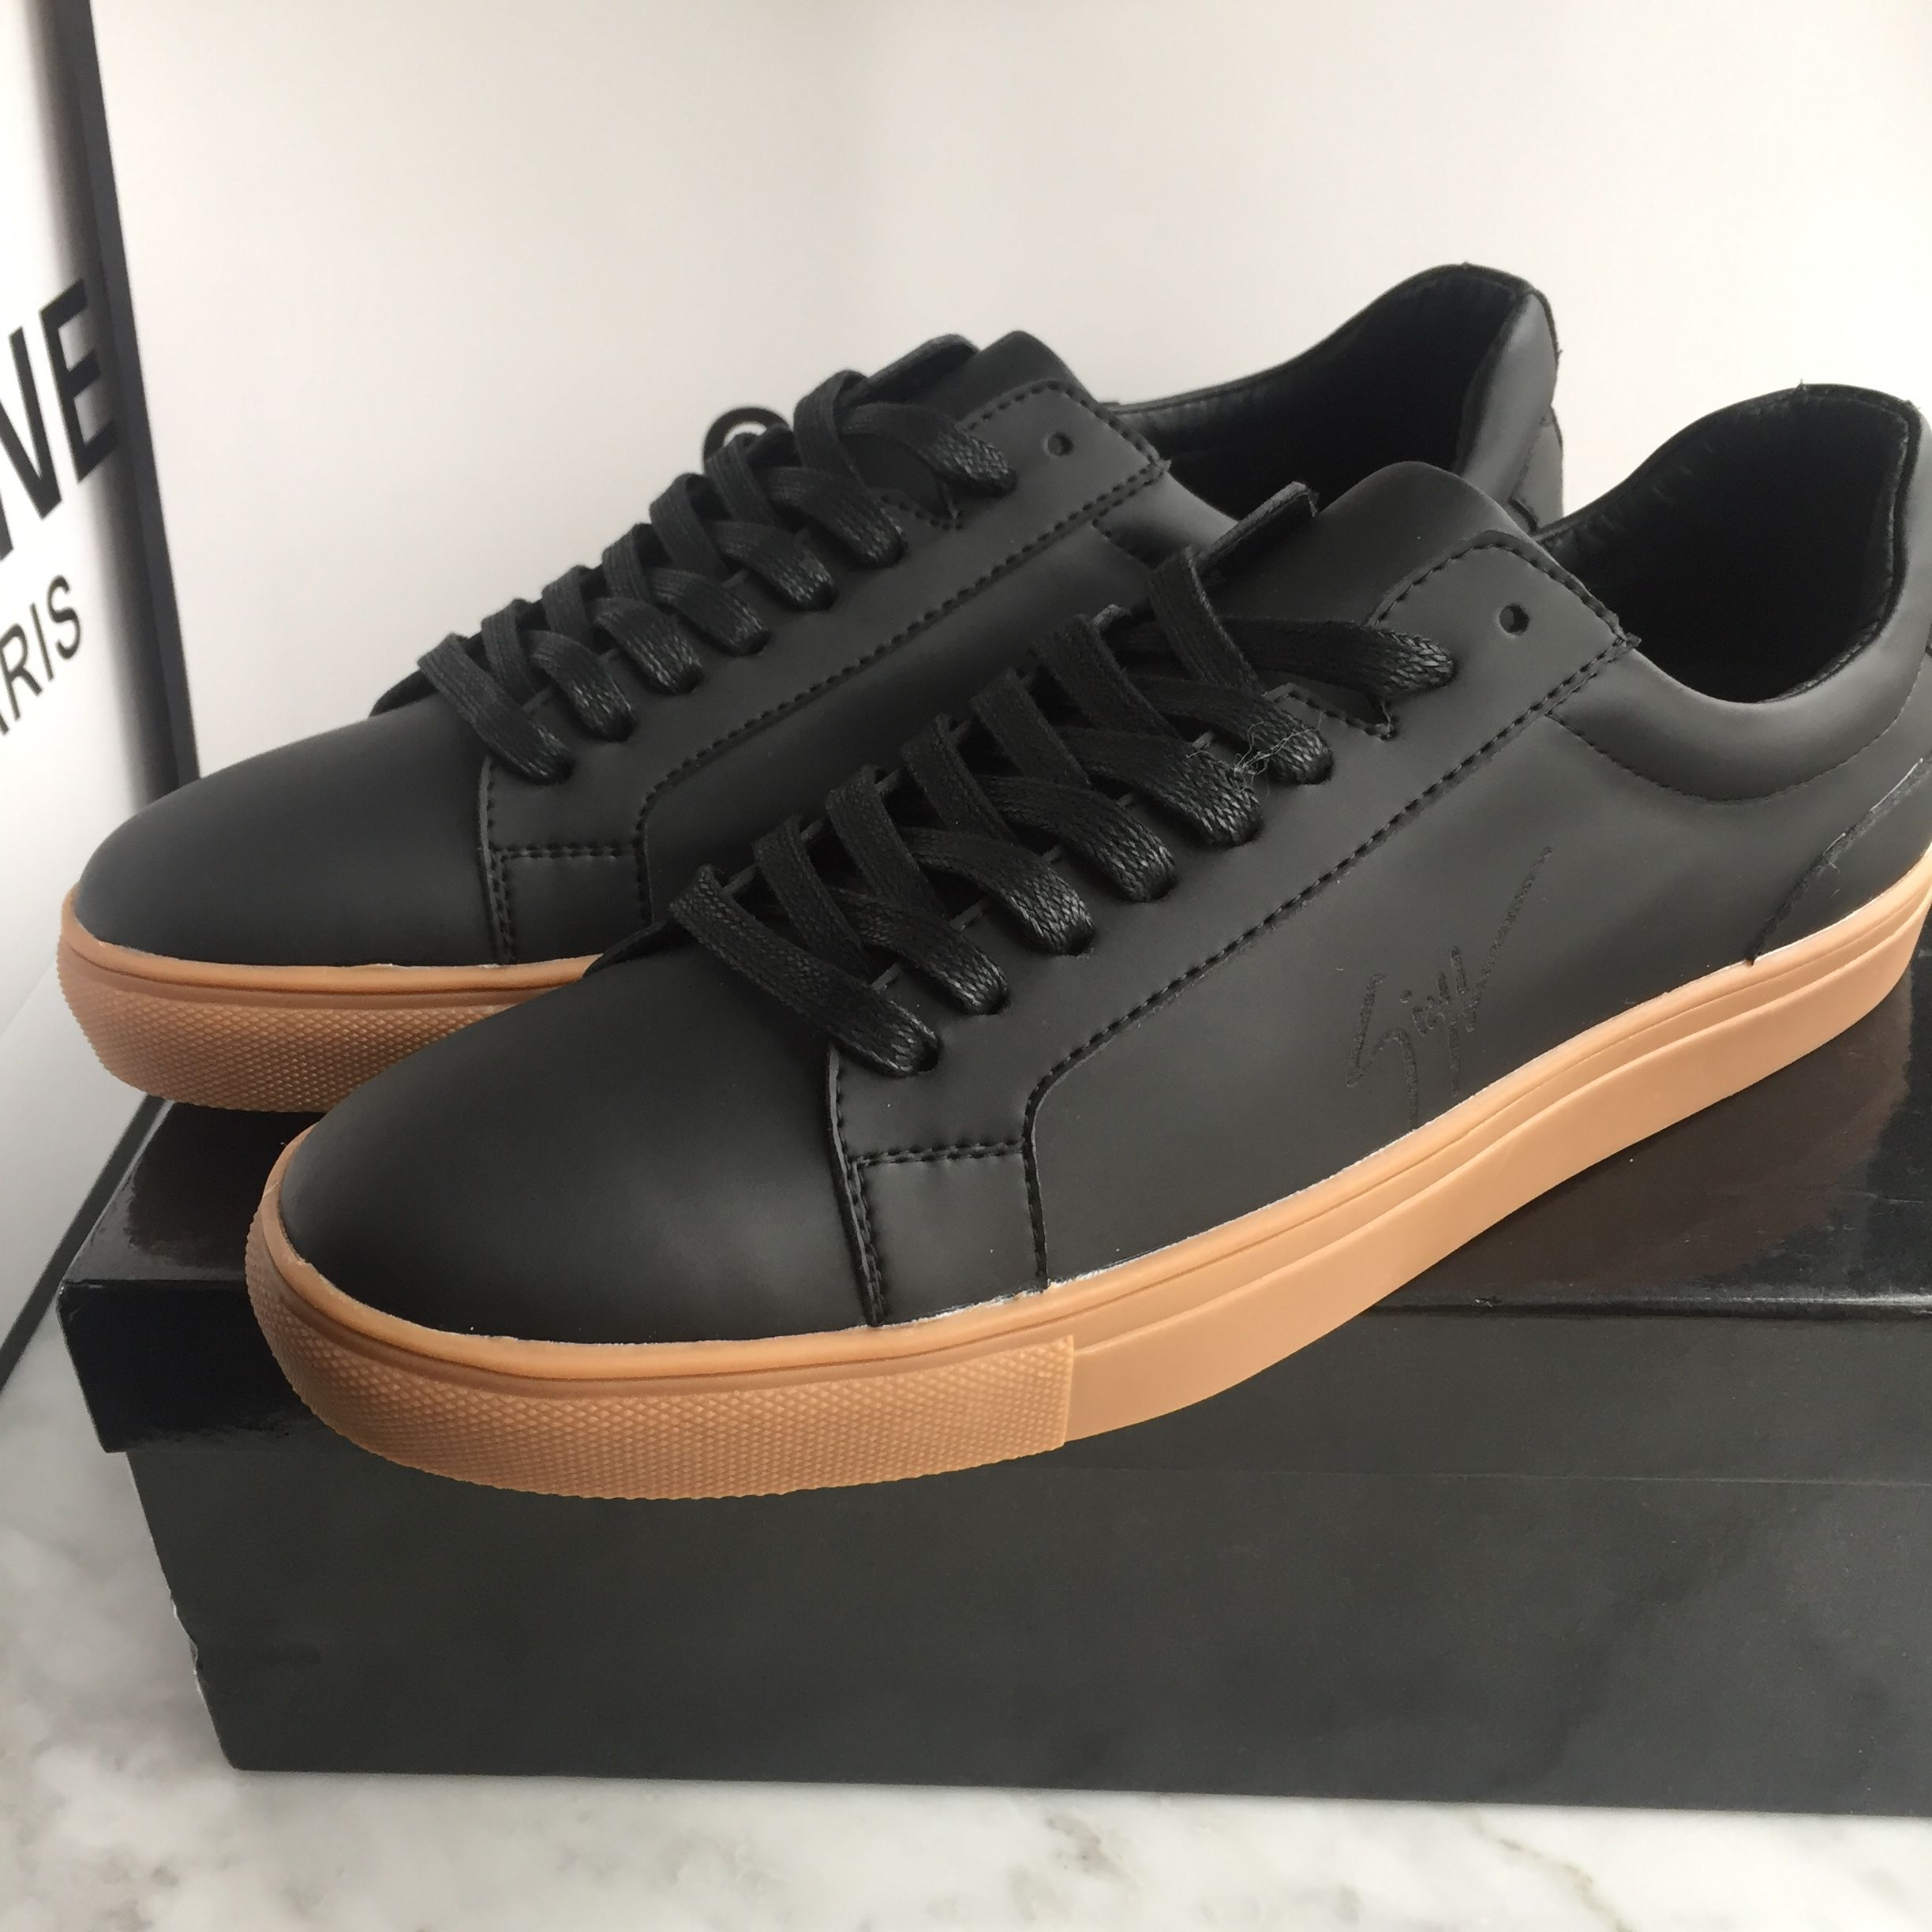 Giuseppe zanotti man shoes leather sneakers